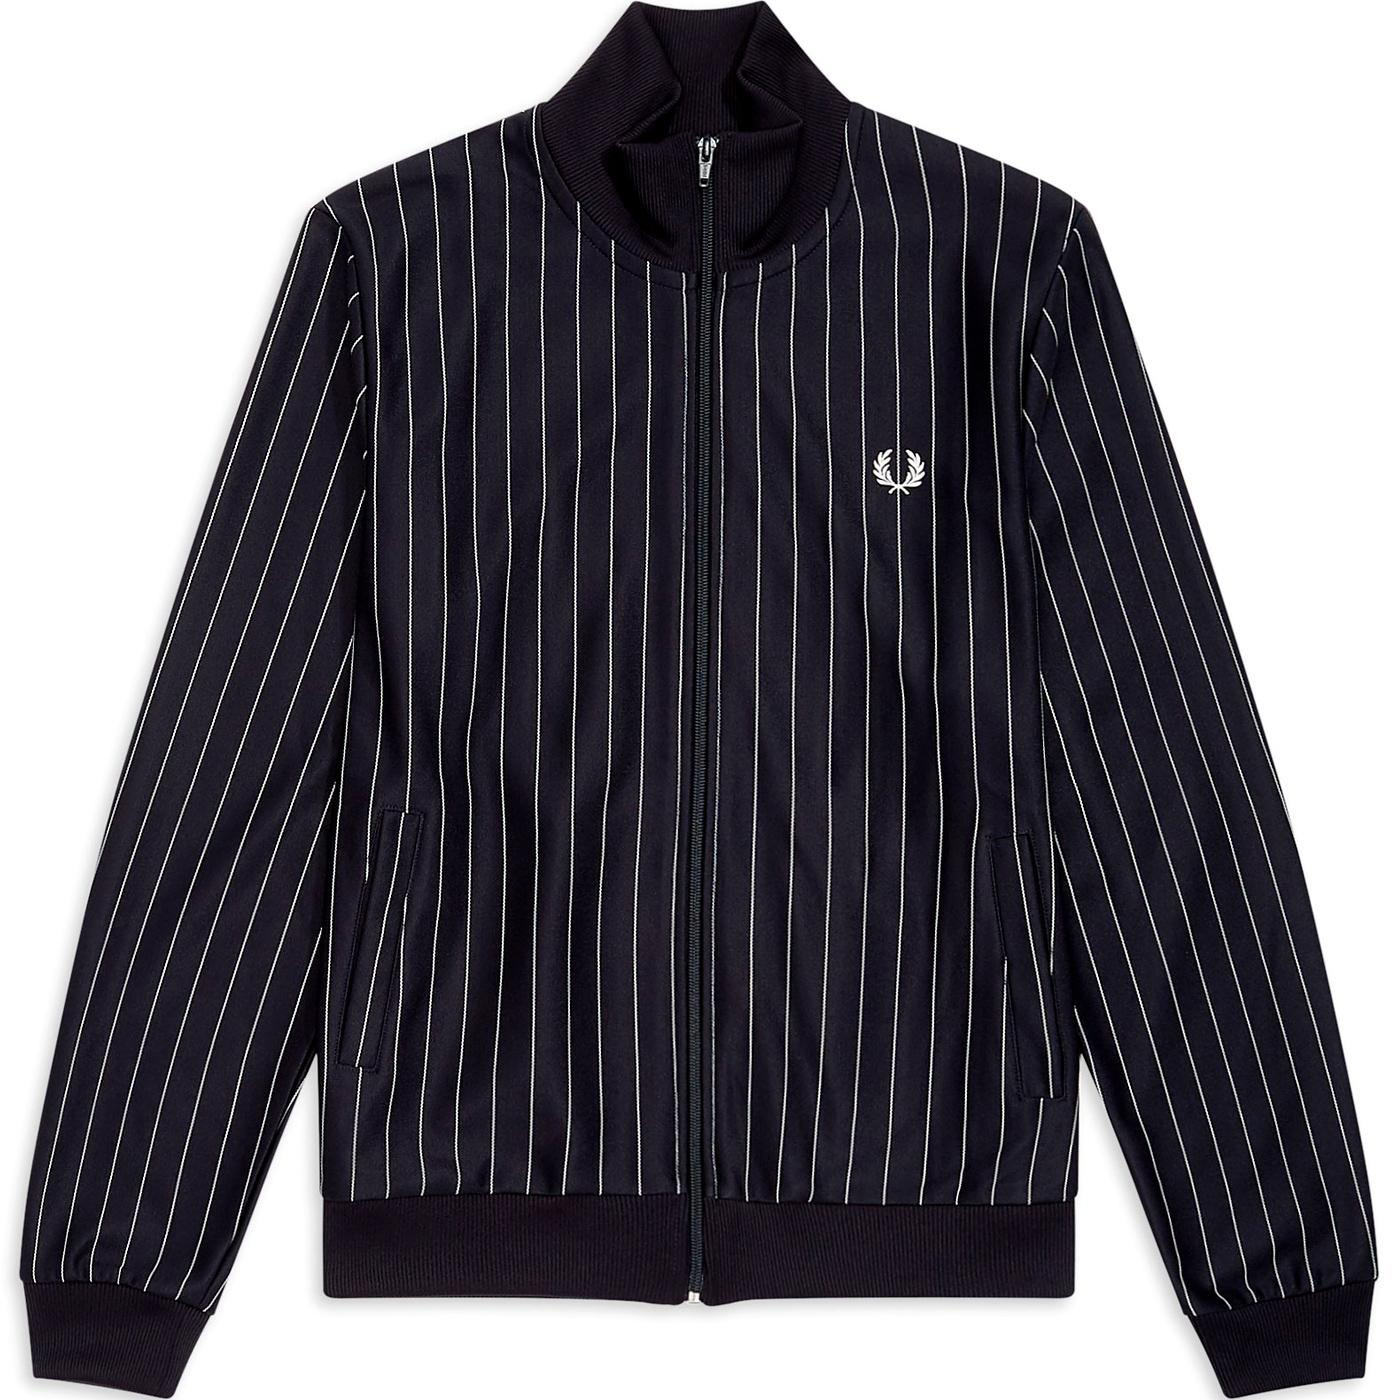 FRED PERRY Men's Retro 90s Pinstripe Track Jacket